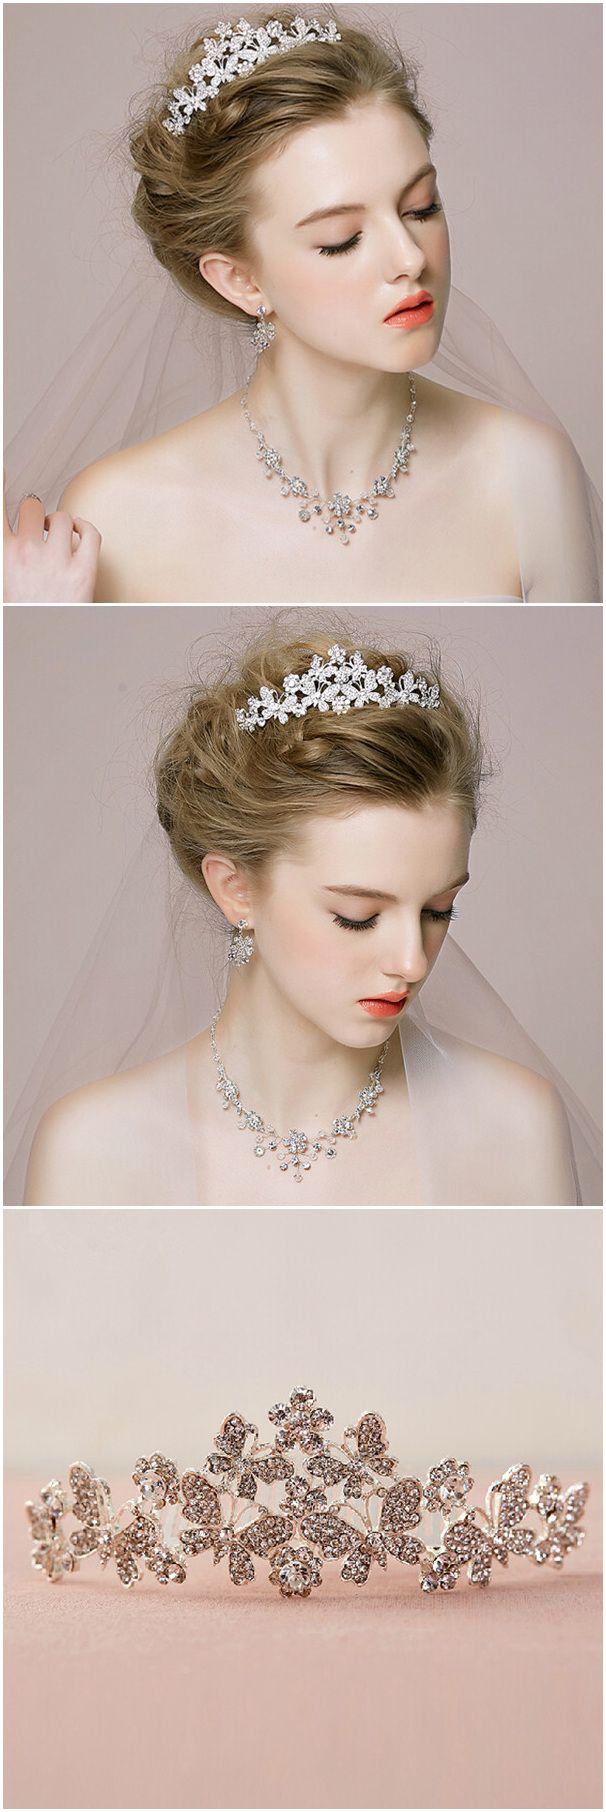 Wedding Accessory-Butterfly Inspired Rhinestone Wedding Tiaras @elegantwinvites